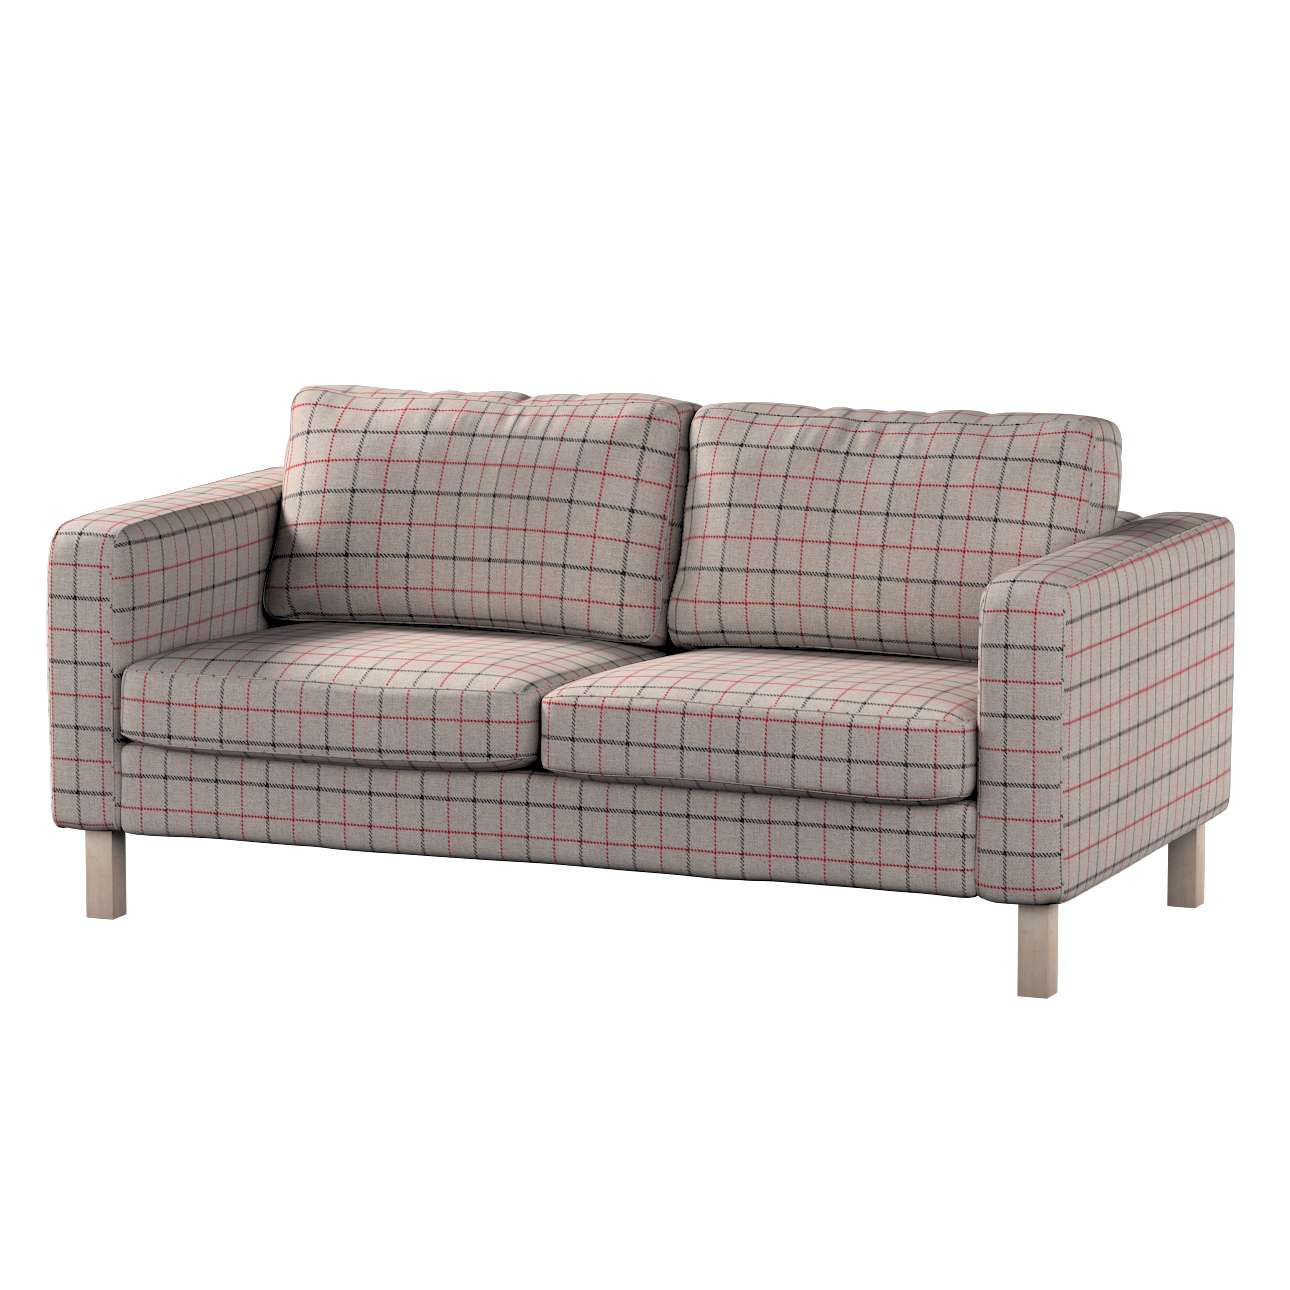 Karlstad 2-seater sofa cover in collection Edinburgh, fabric: 703-13